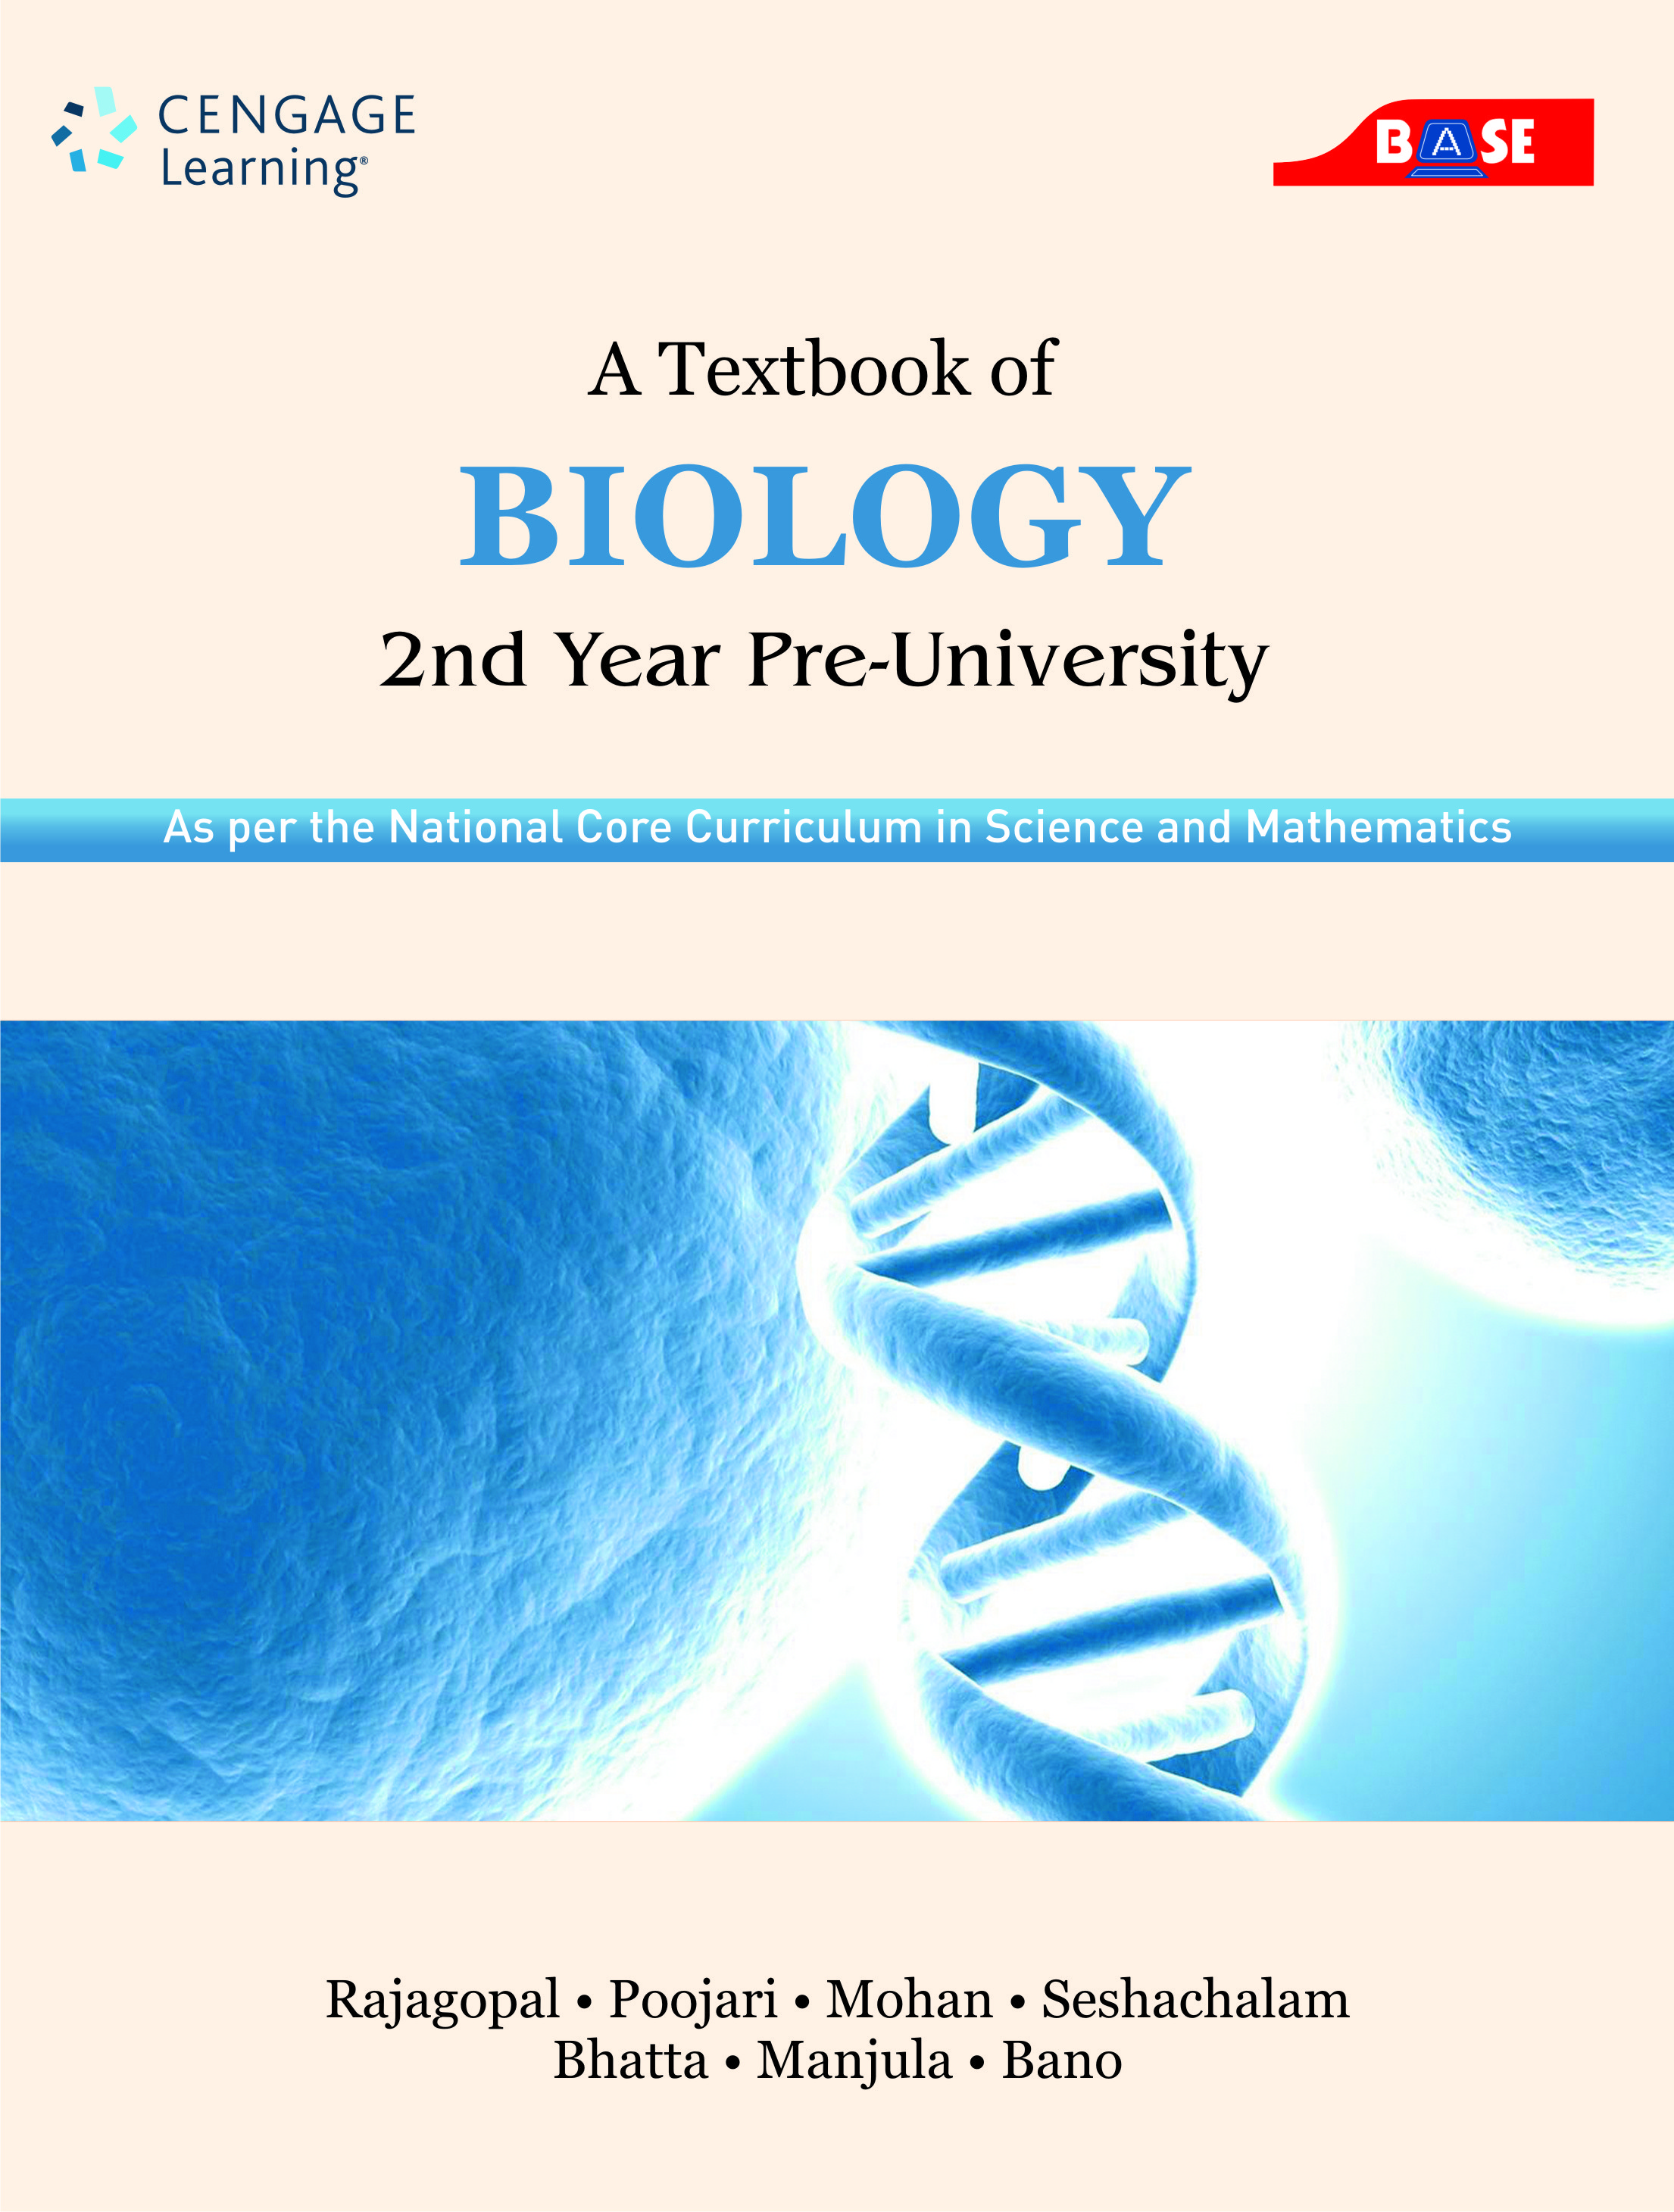 a textbook of biology  as per the national core curriculum in science and mathematics  2 year